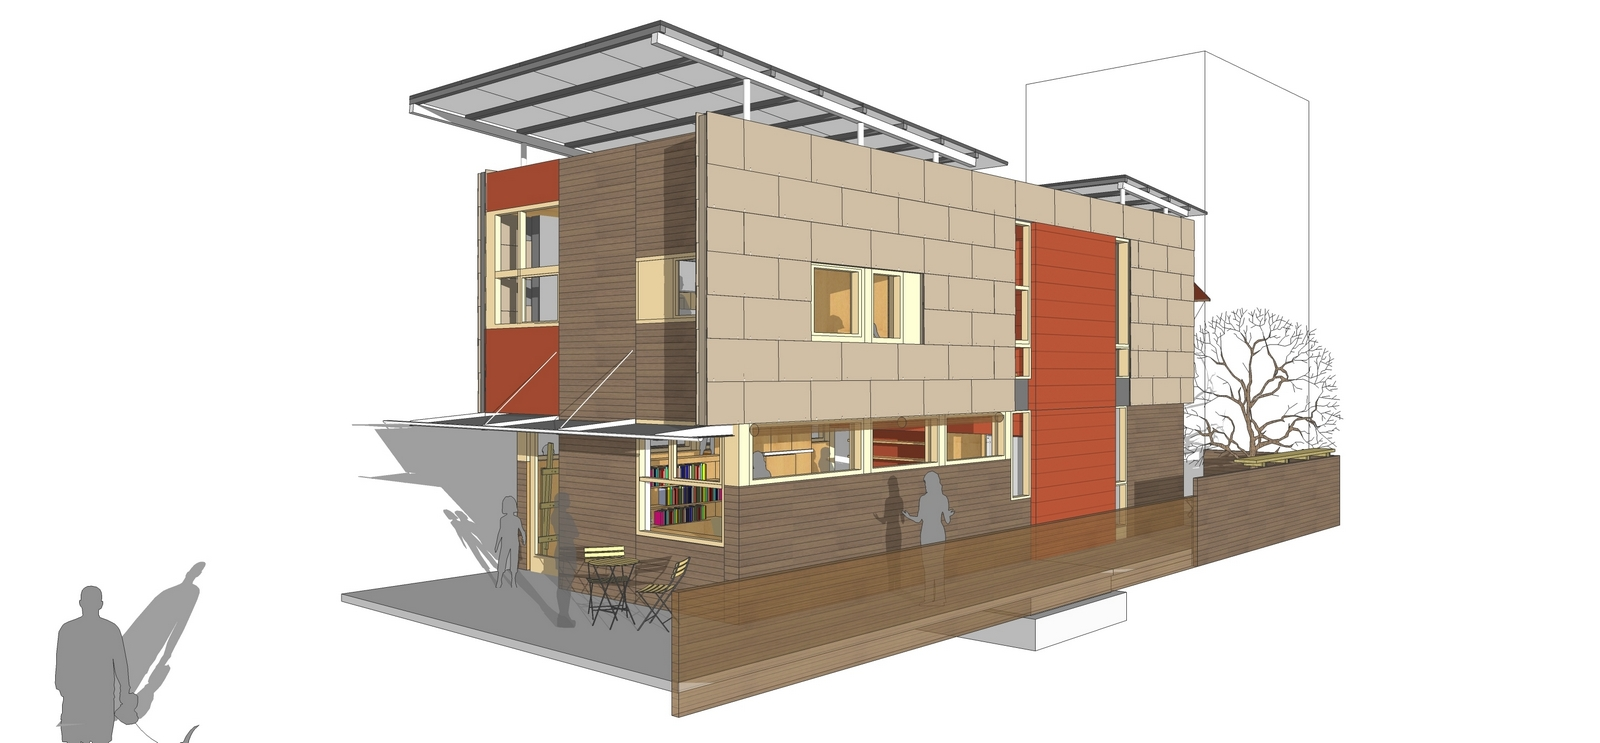 A number of people from the local green building community are working on the House of the Future, in conjunction with the 50th Anniversary of the 1962 Seattle World's Fair (I am part of an energy design subgroup). We are expecting hundreds of thousands t